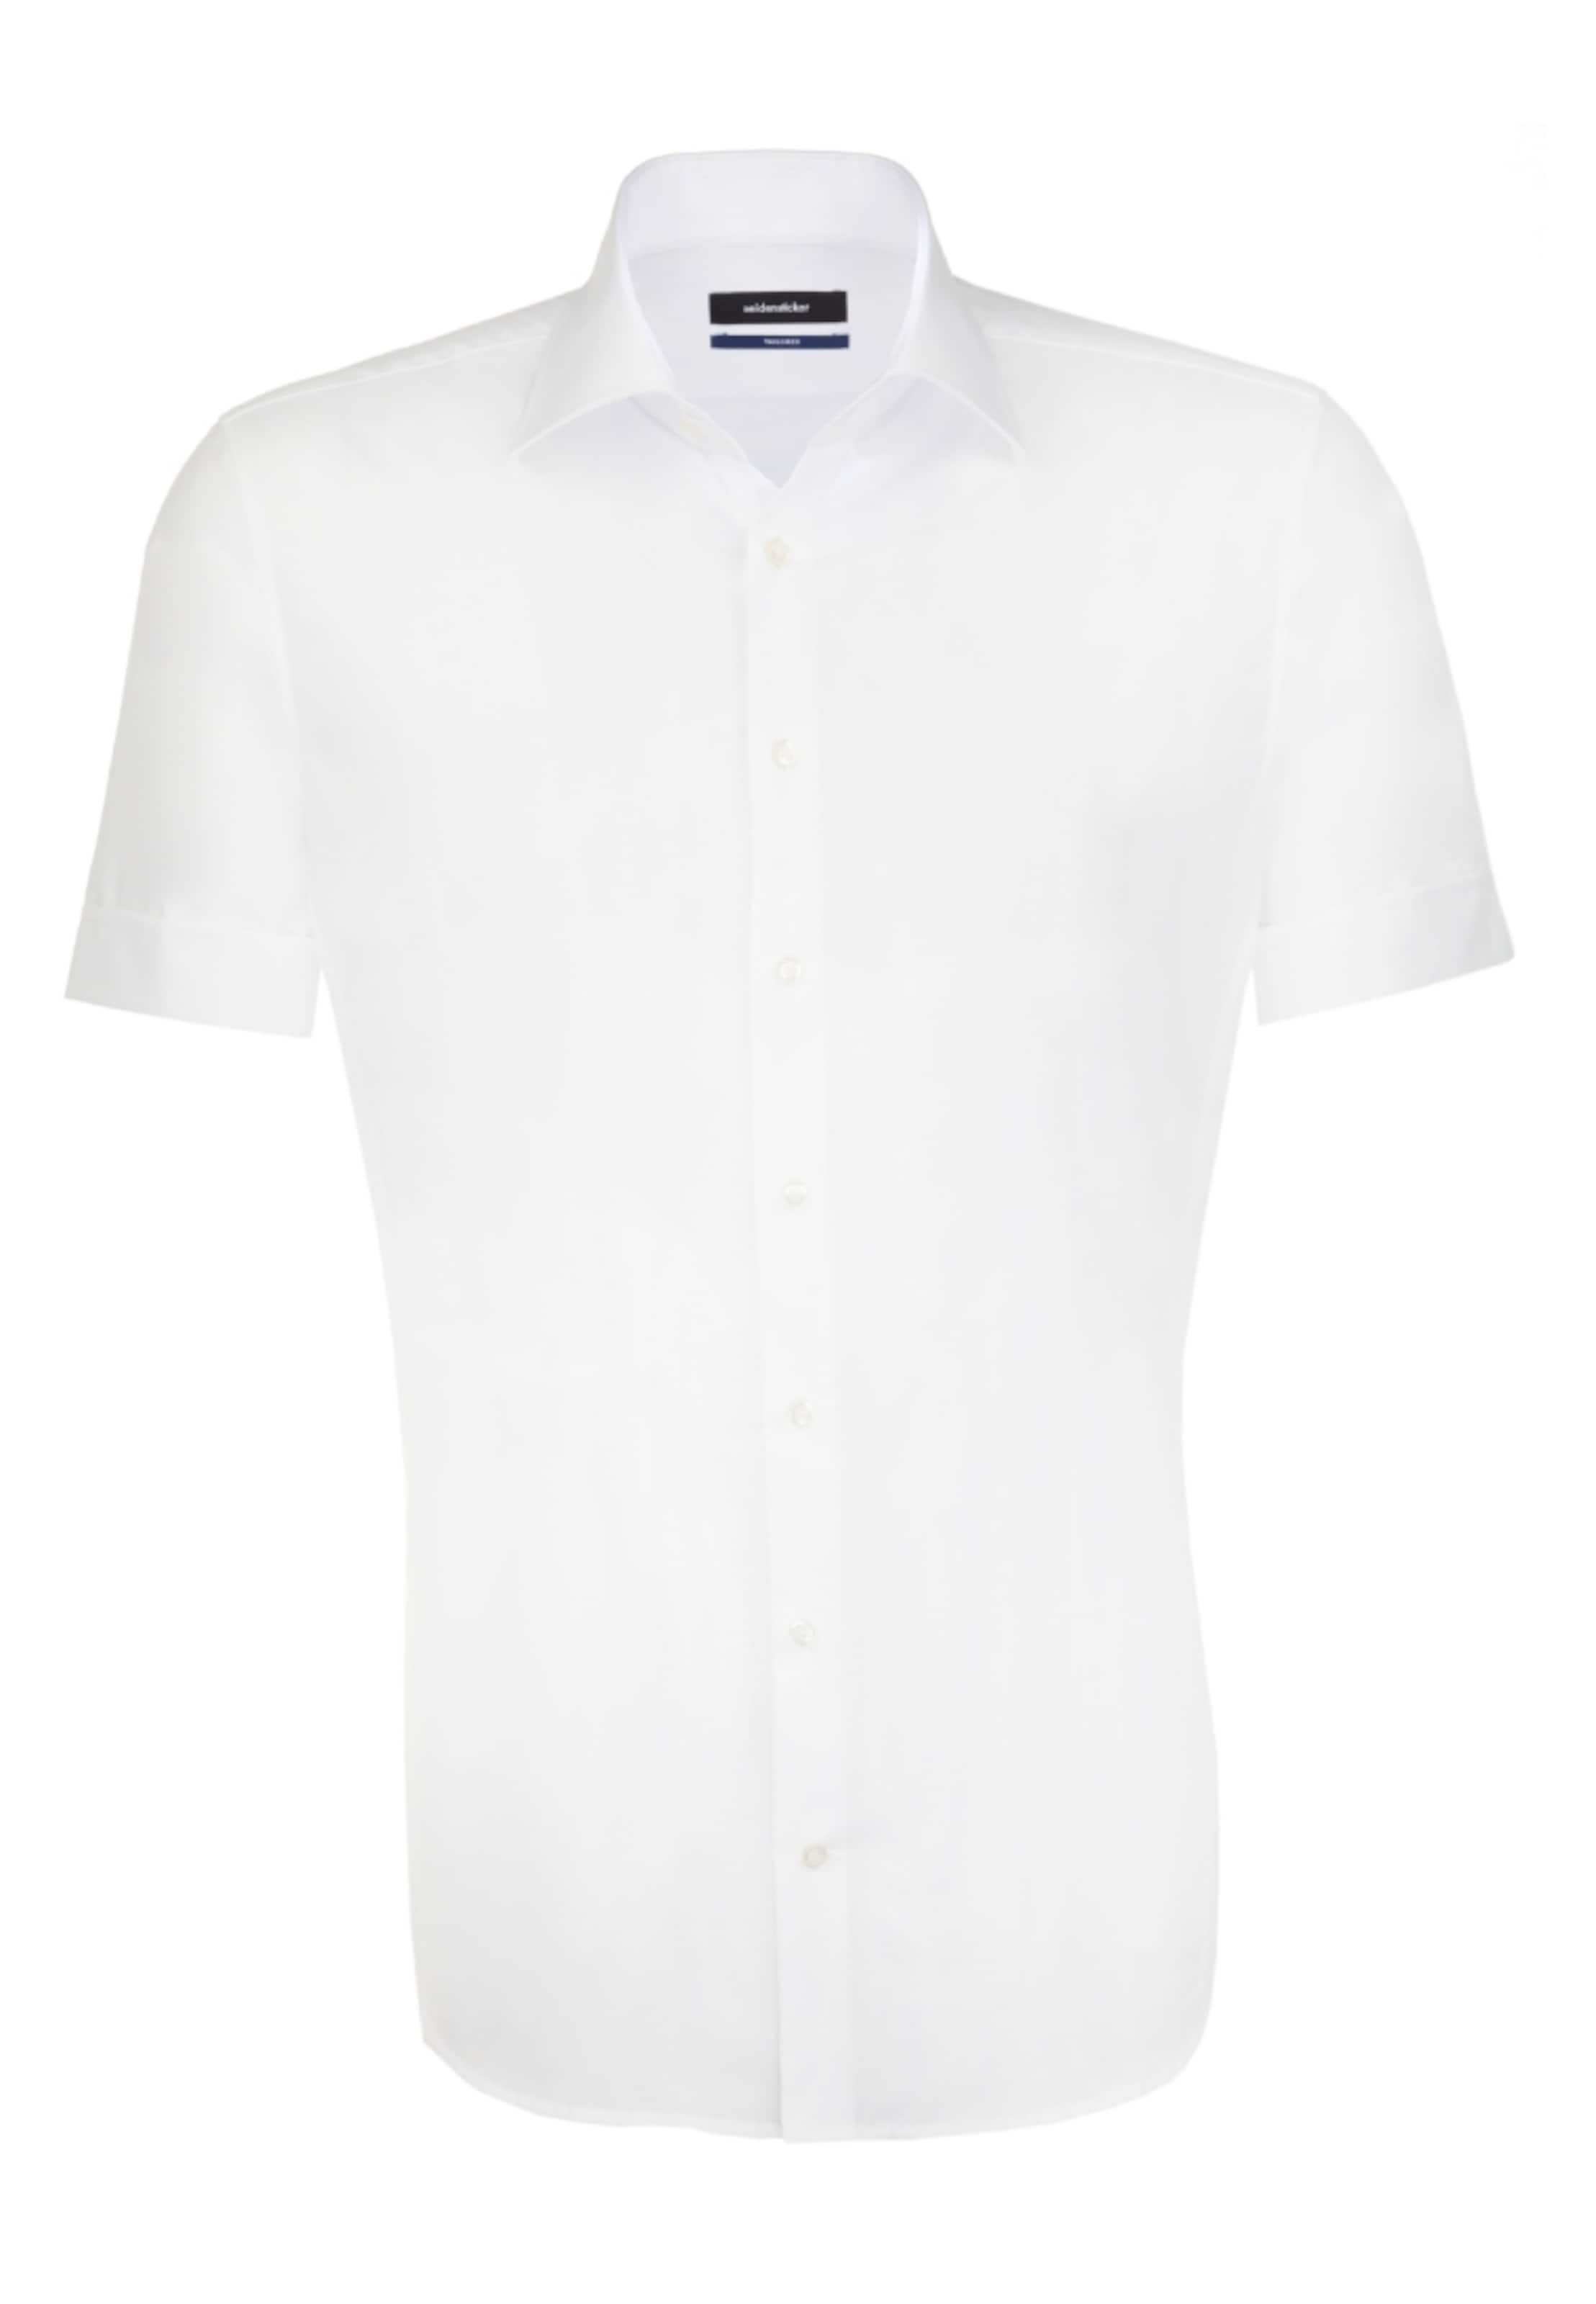 En Chemise Seidensticker 'tailored' Blanc Business eWYDEIH29